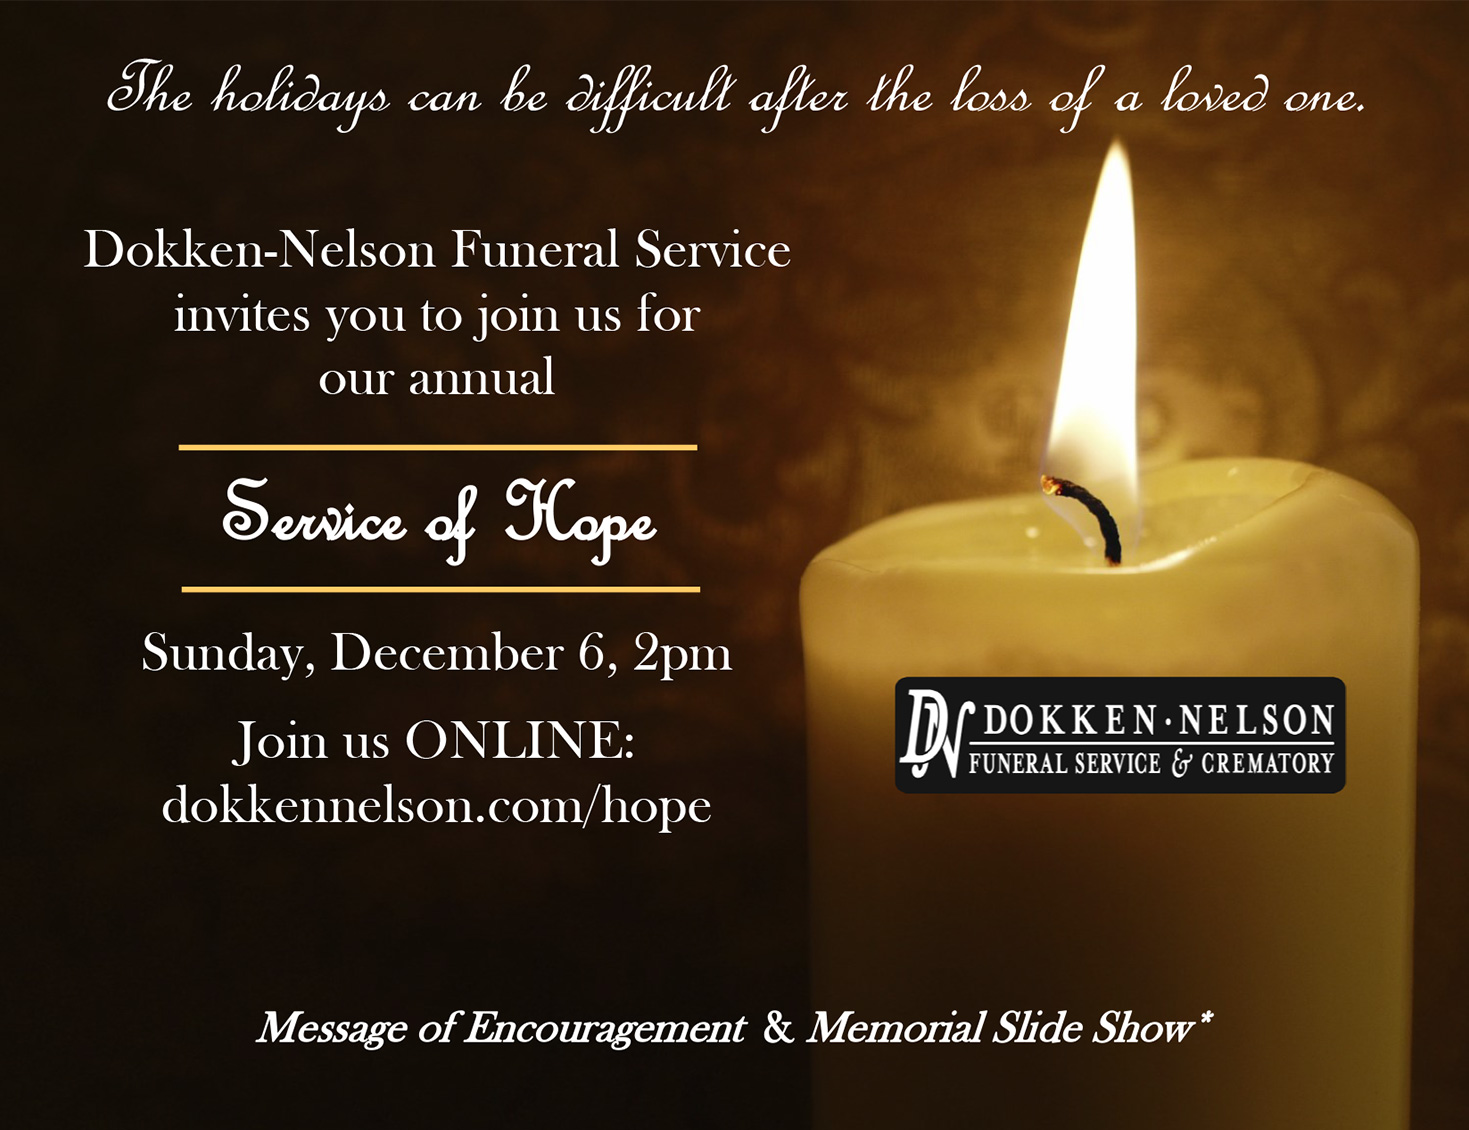 Annual Service of Hope